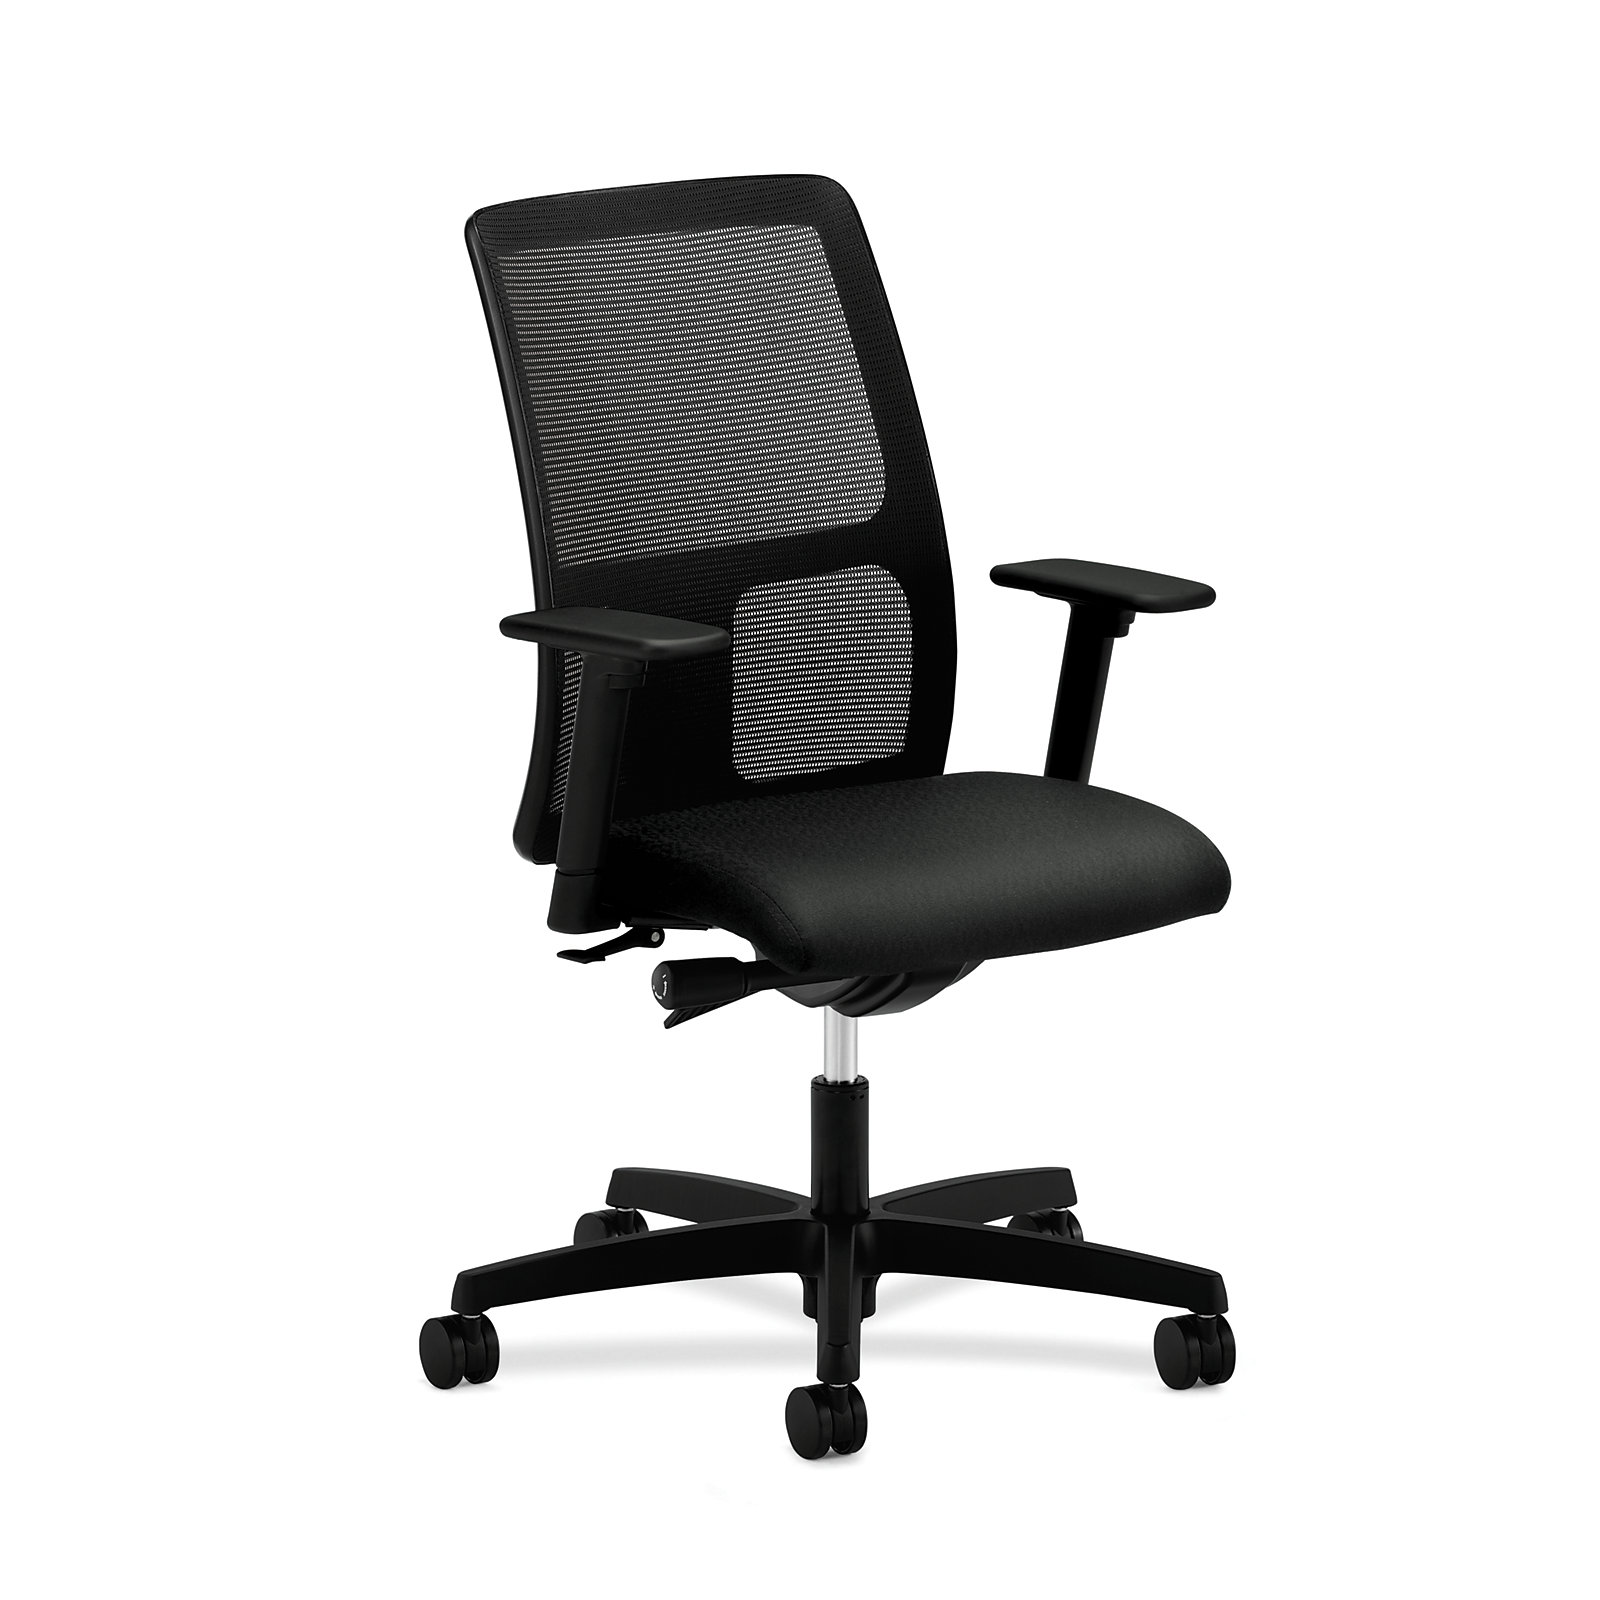 big and sb adjustable a hlwmbt hon task endorsecollection chairs im mesh endorse iris mid back v collection odyssey furniture tall office chair arms